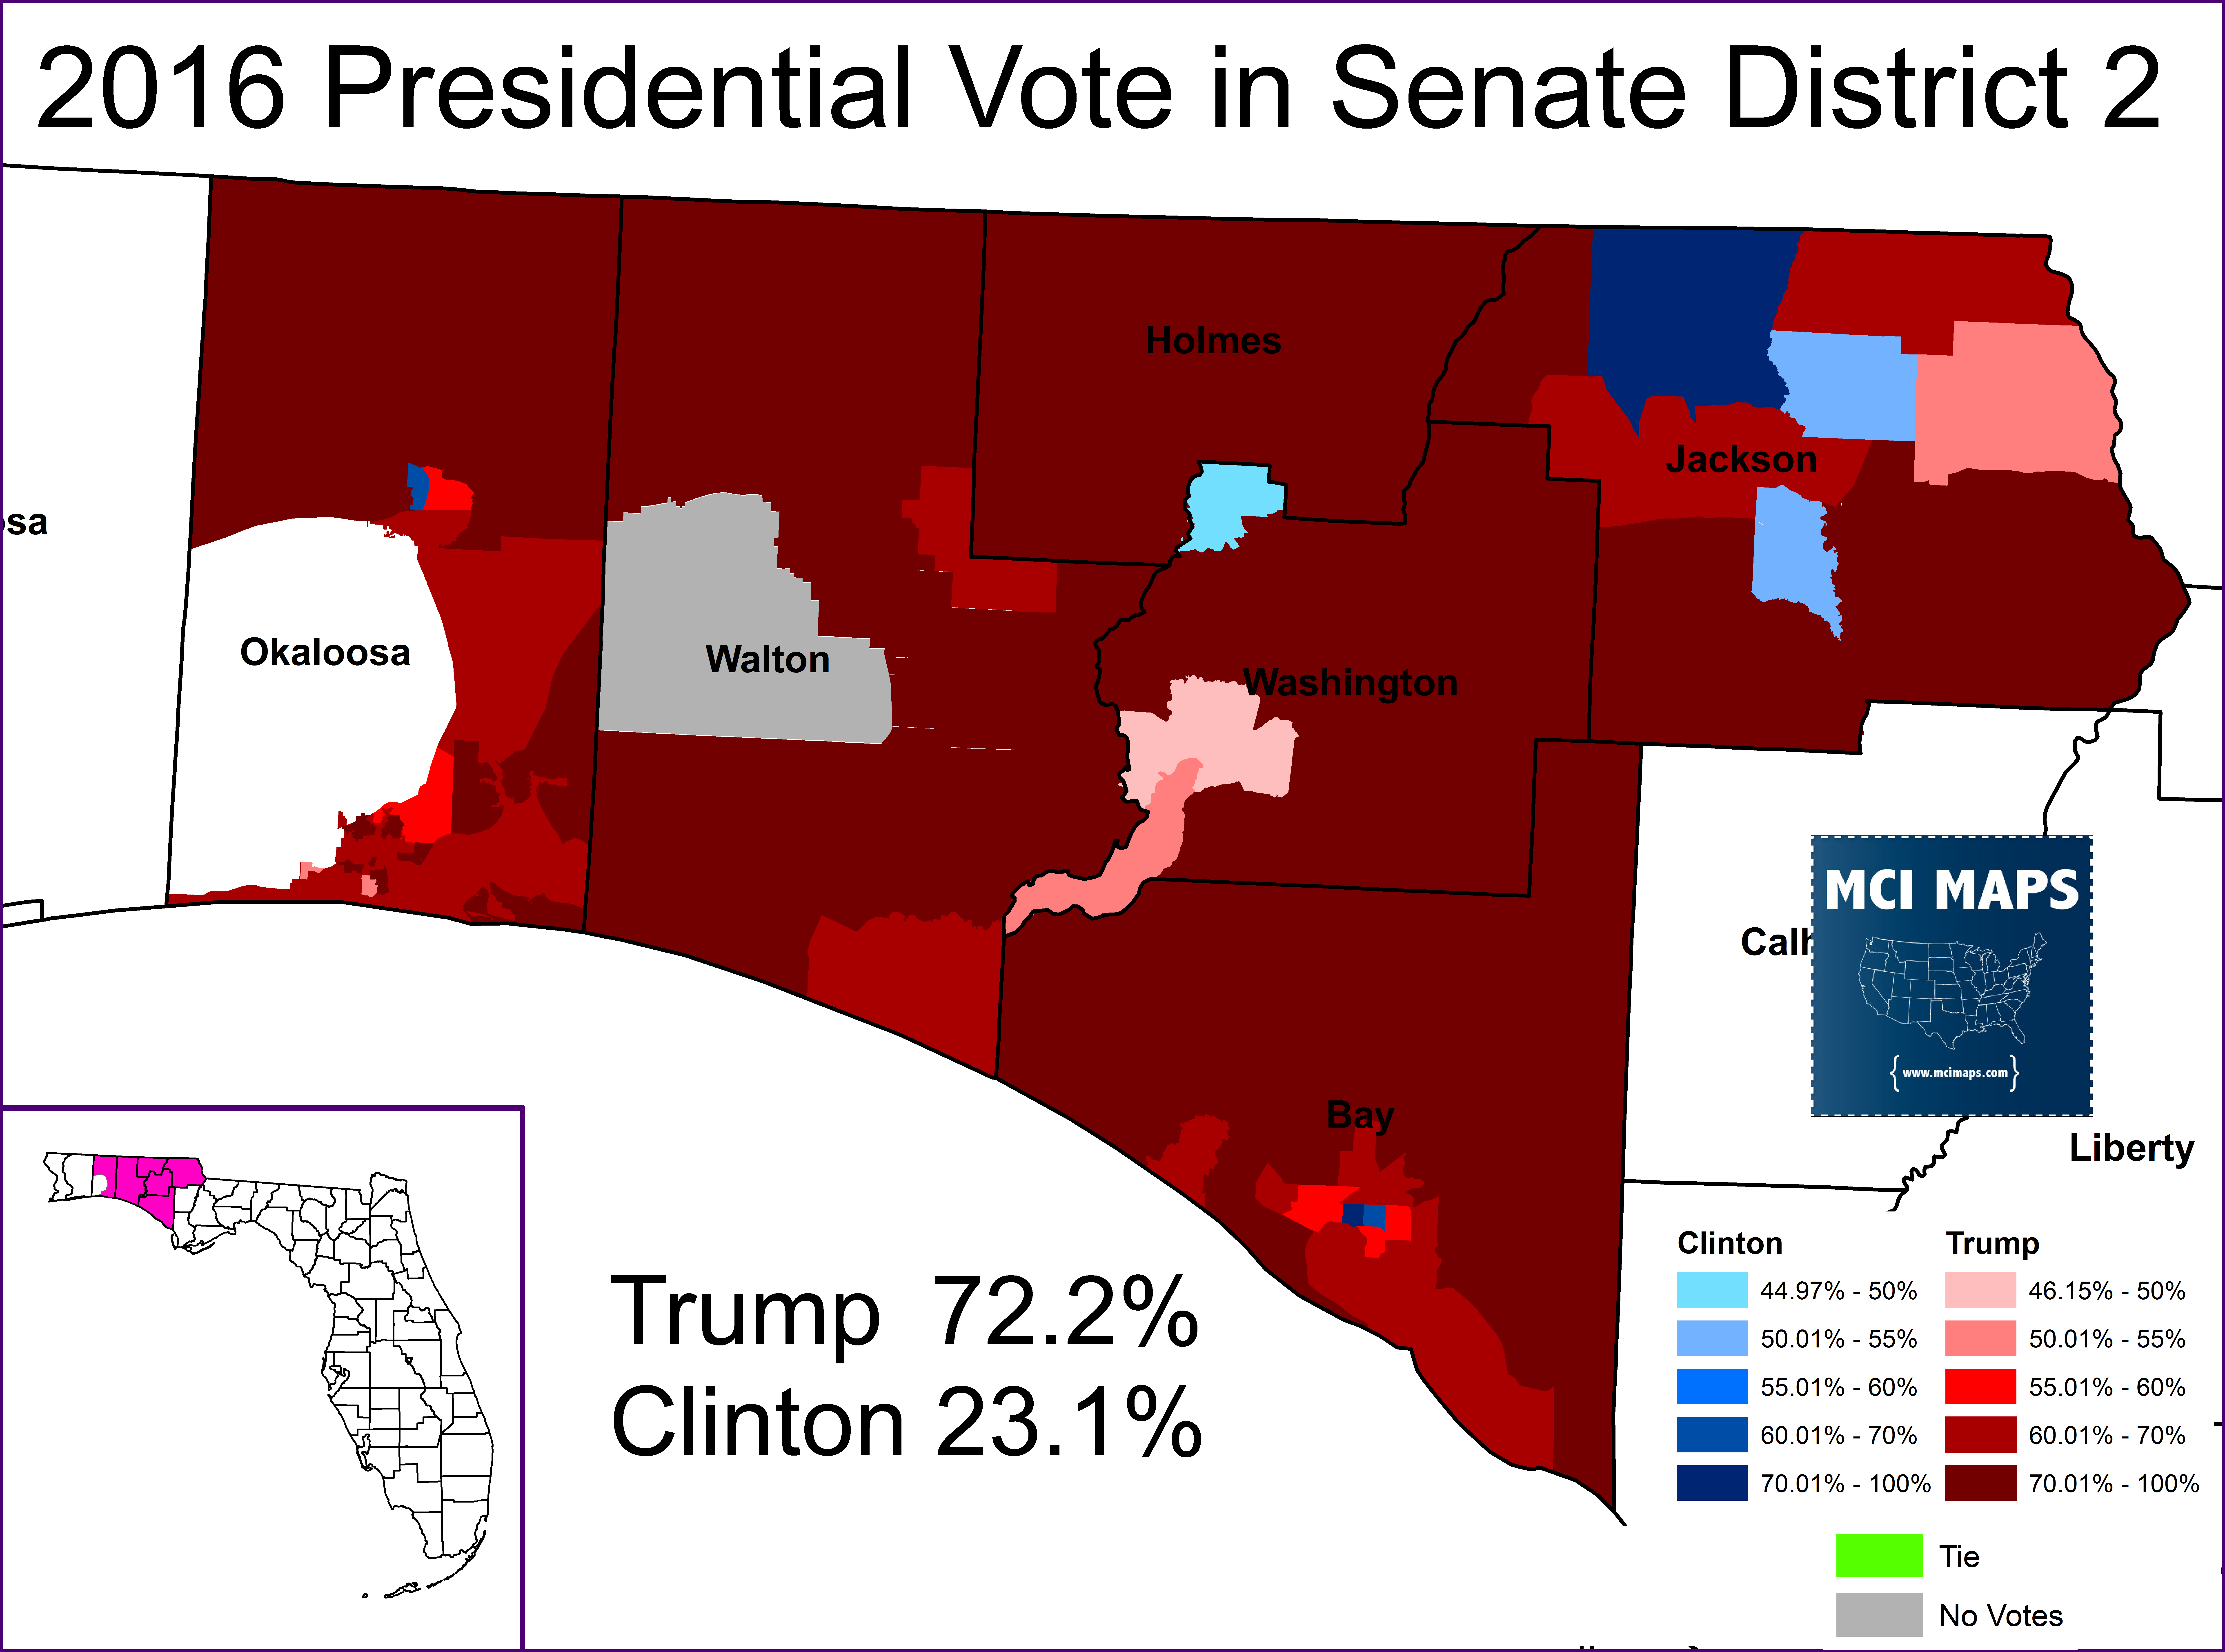 The District Continues To Move Right It Saw Trump Improve Over Romney Democrats Used Have Registration Advantages In Holmes Washington